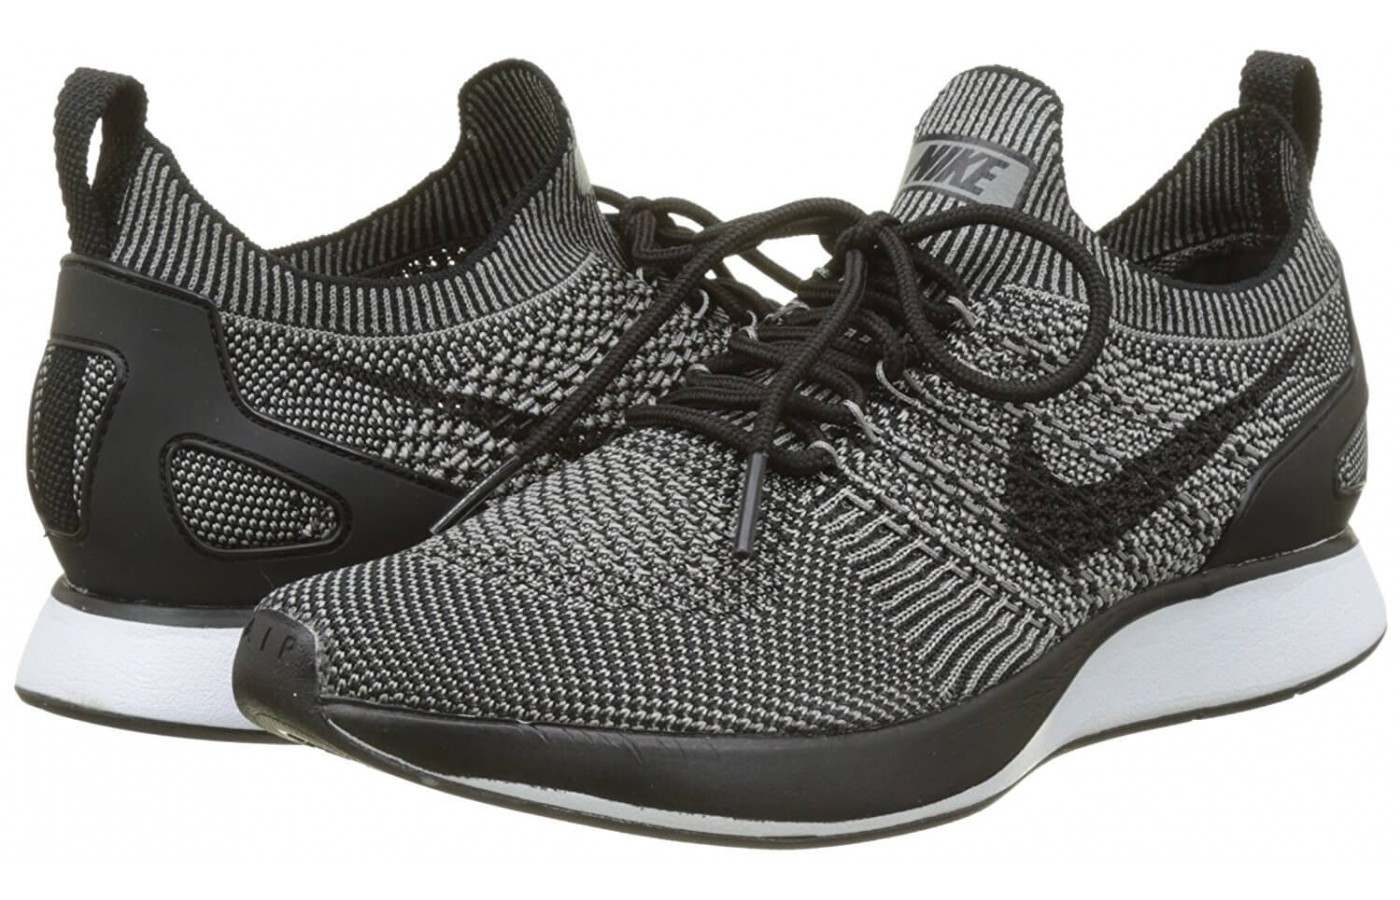 94c36d479340e ... The The Nike Air Zoom Mariah Flyknit Racer features a sock-like upper  ...